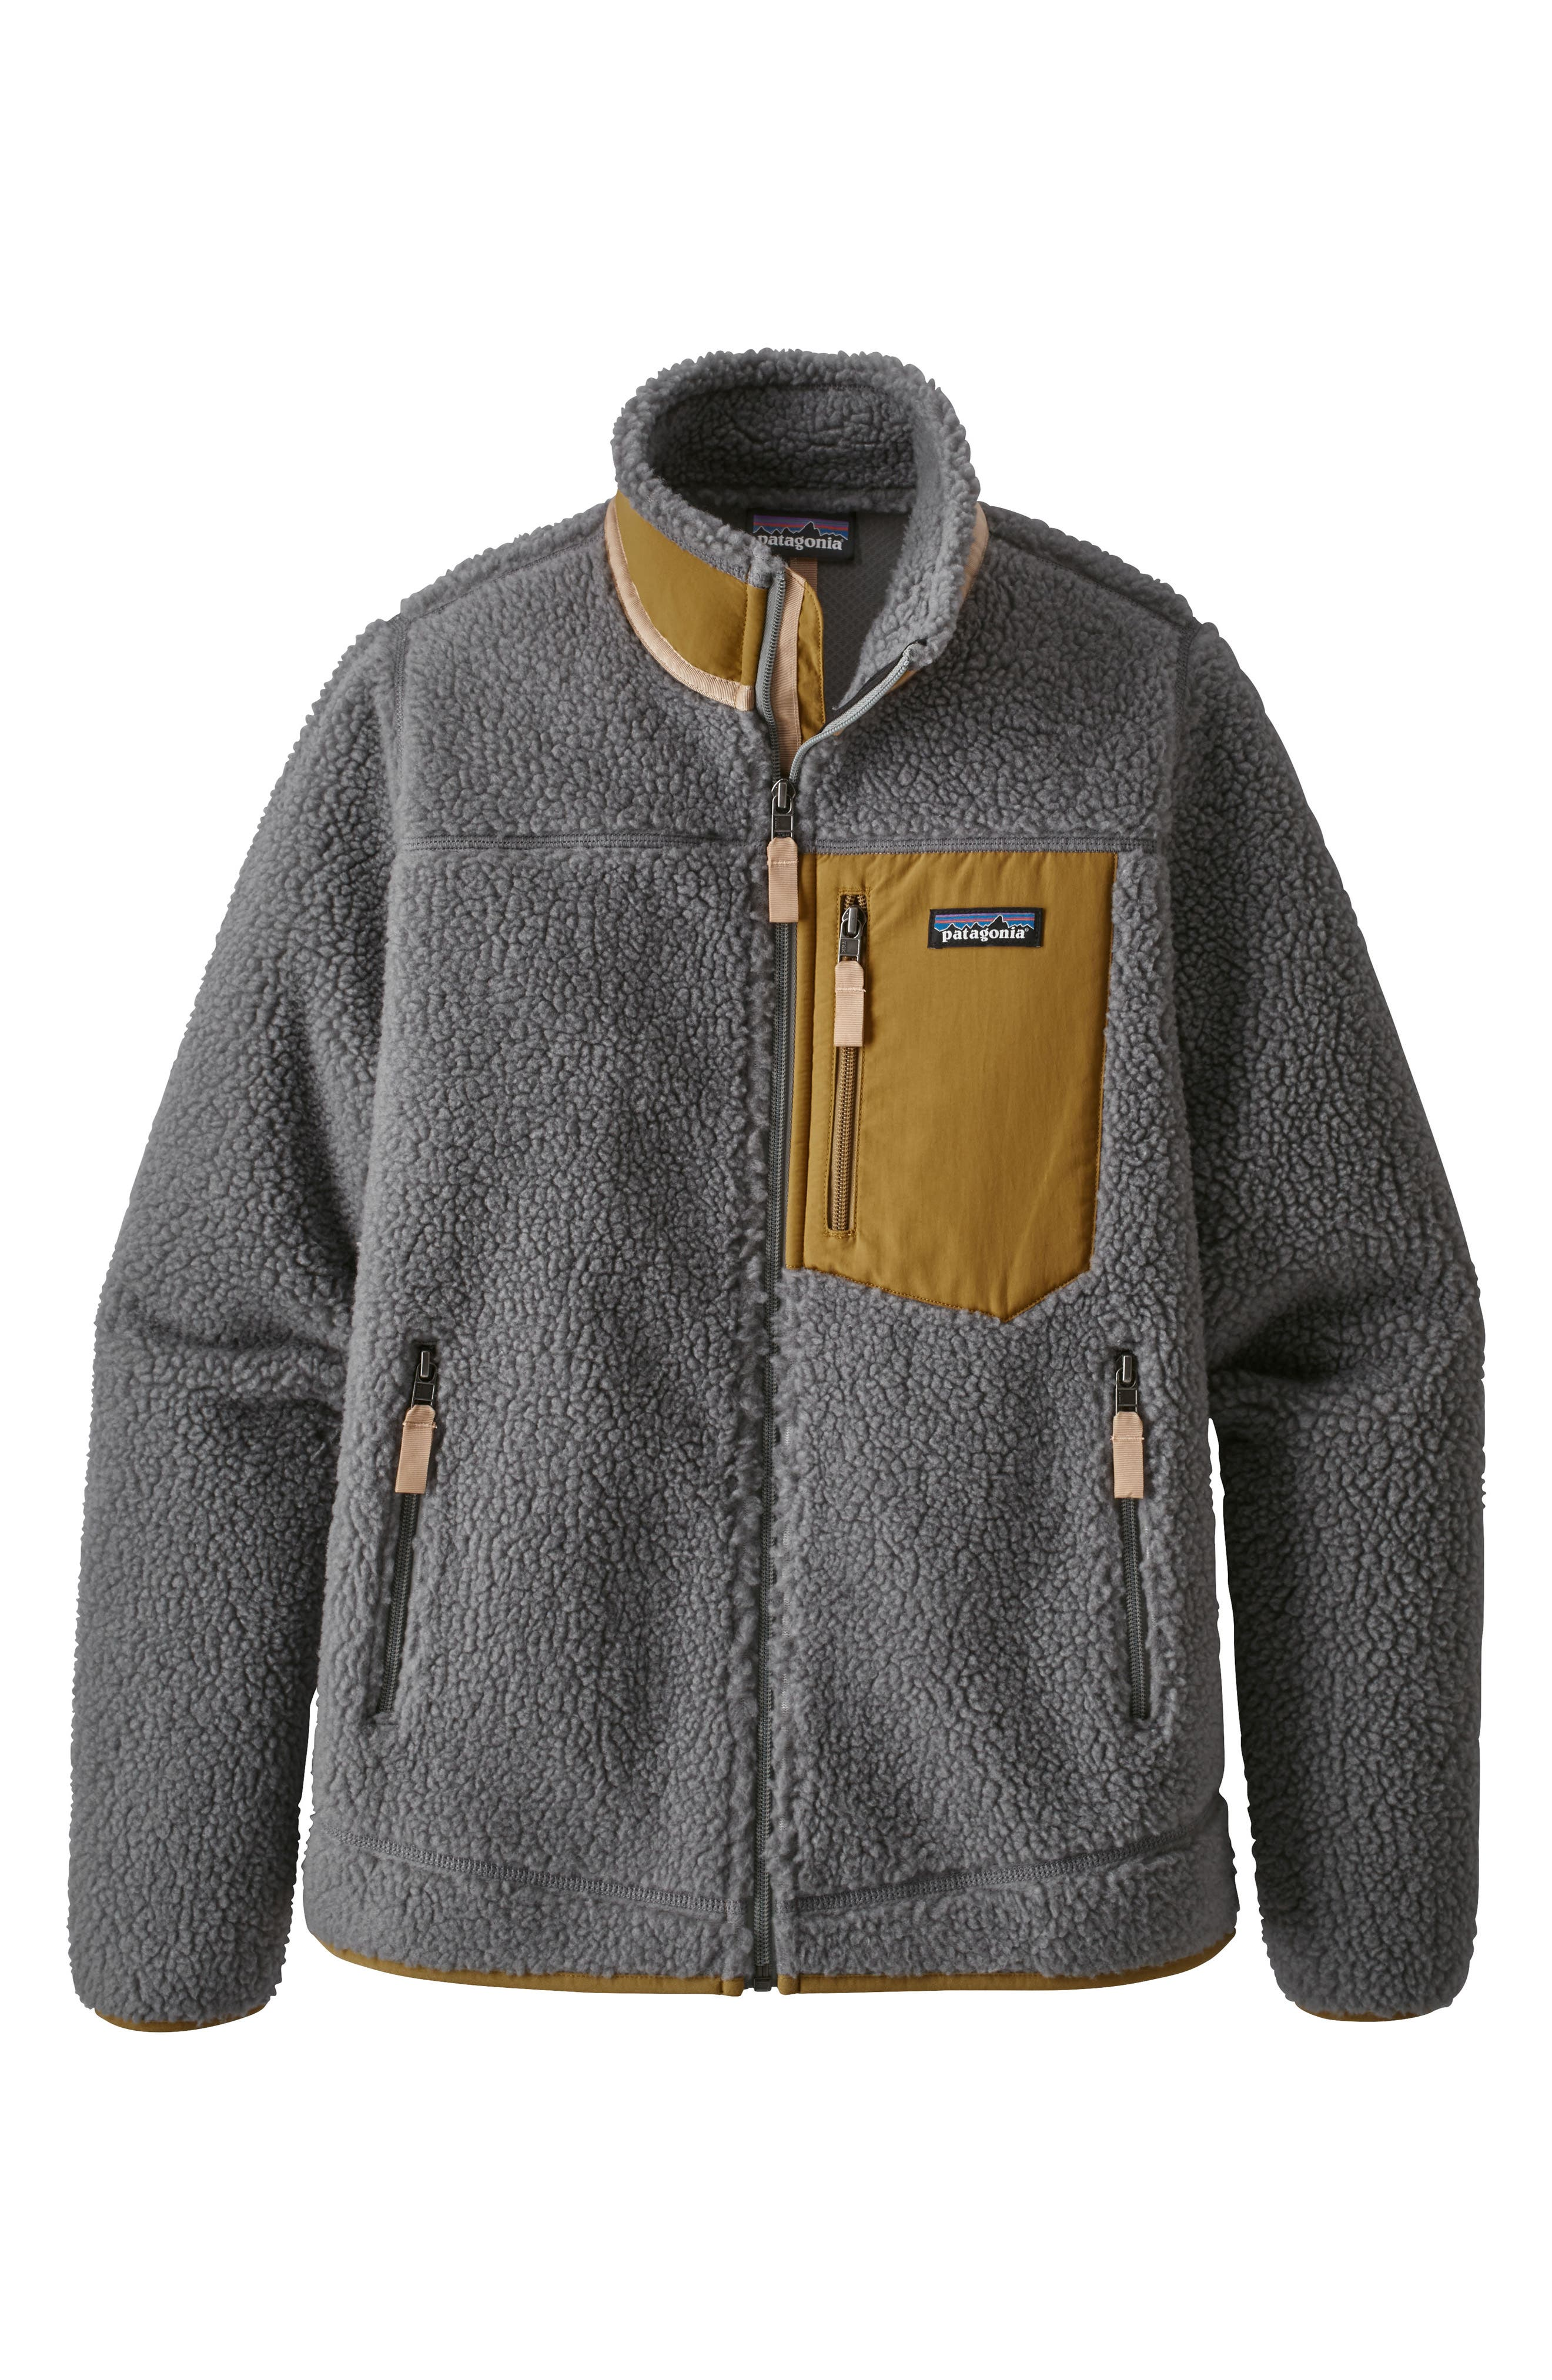 Patagonia Classic Retro-X Fleece Jacket, Grey